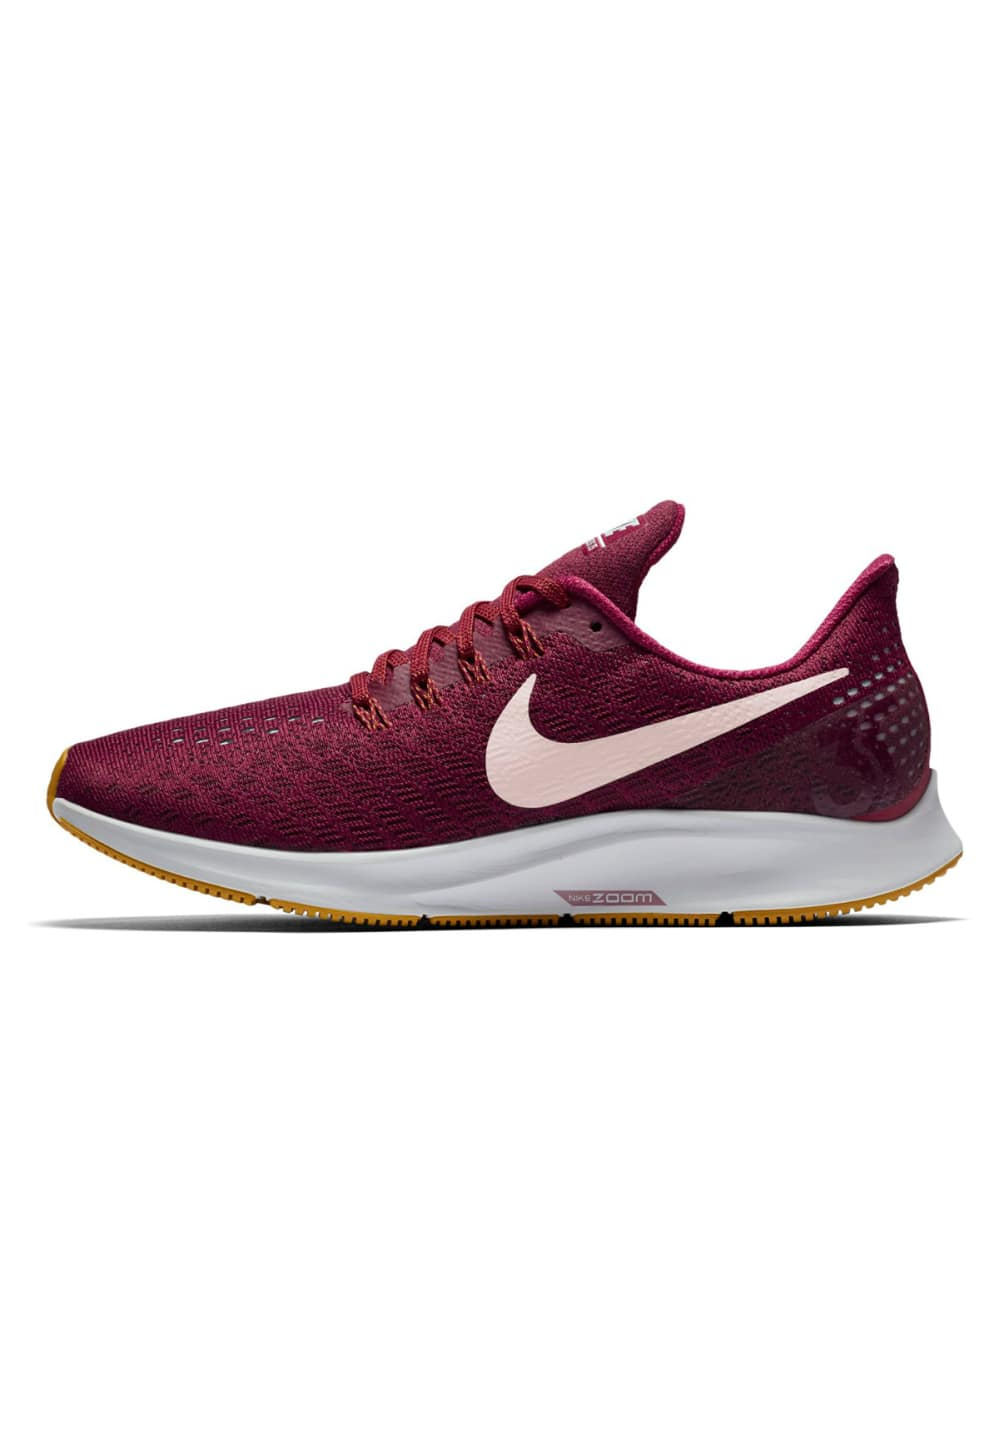 half off 8c91b 54a24 Nike Air Zoom Pegasus 35 - Running shoes for Women - Red